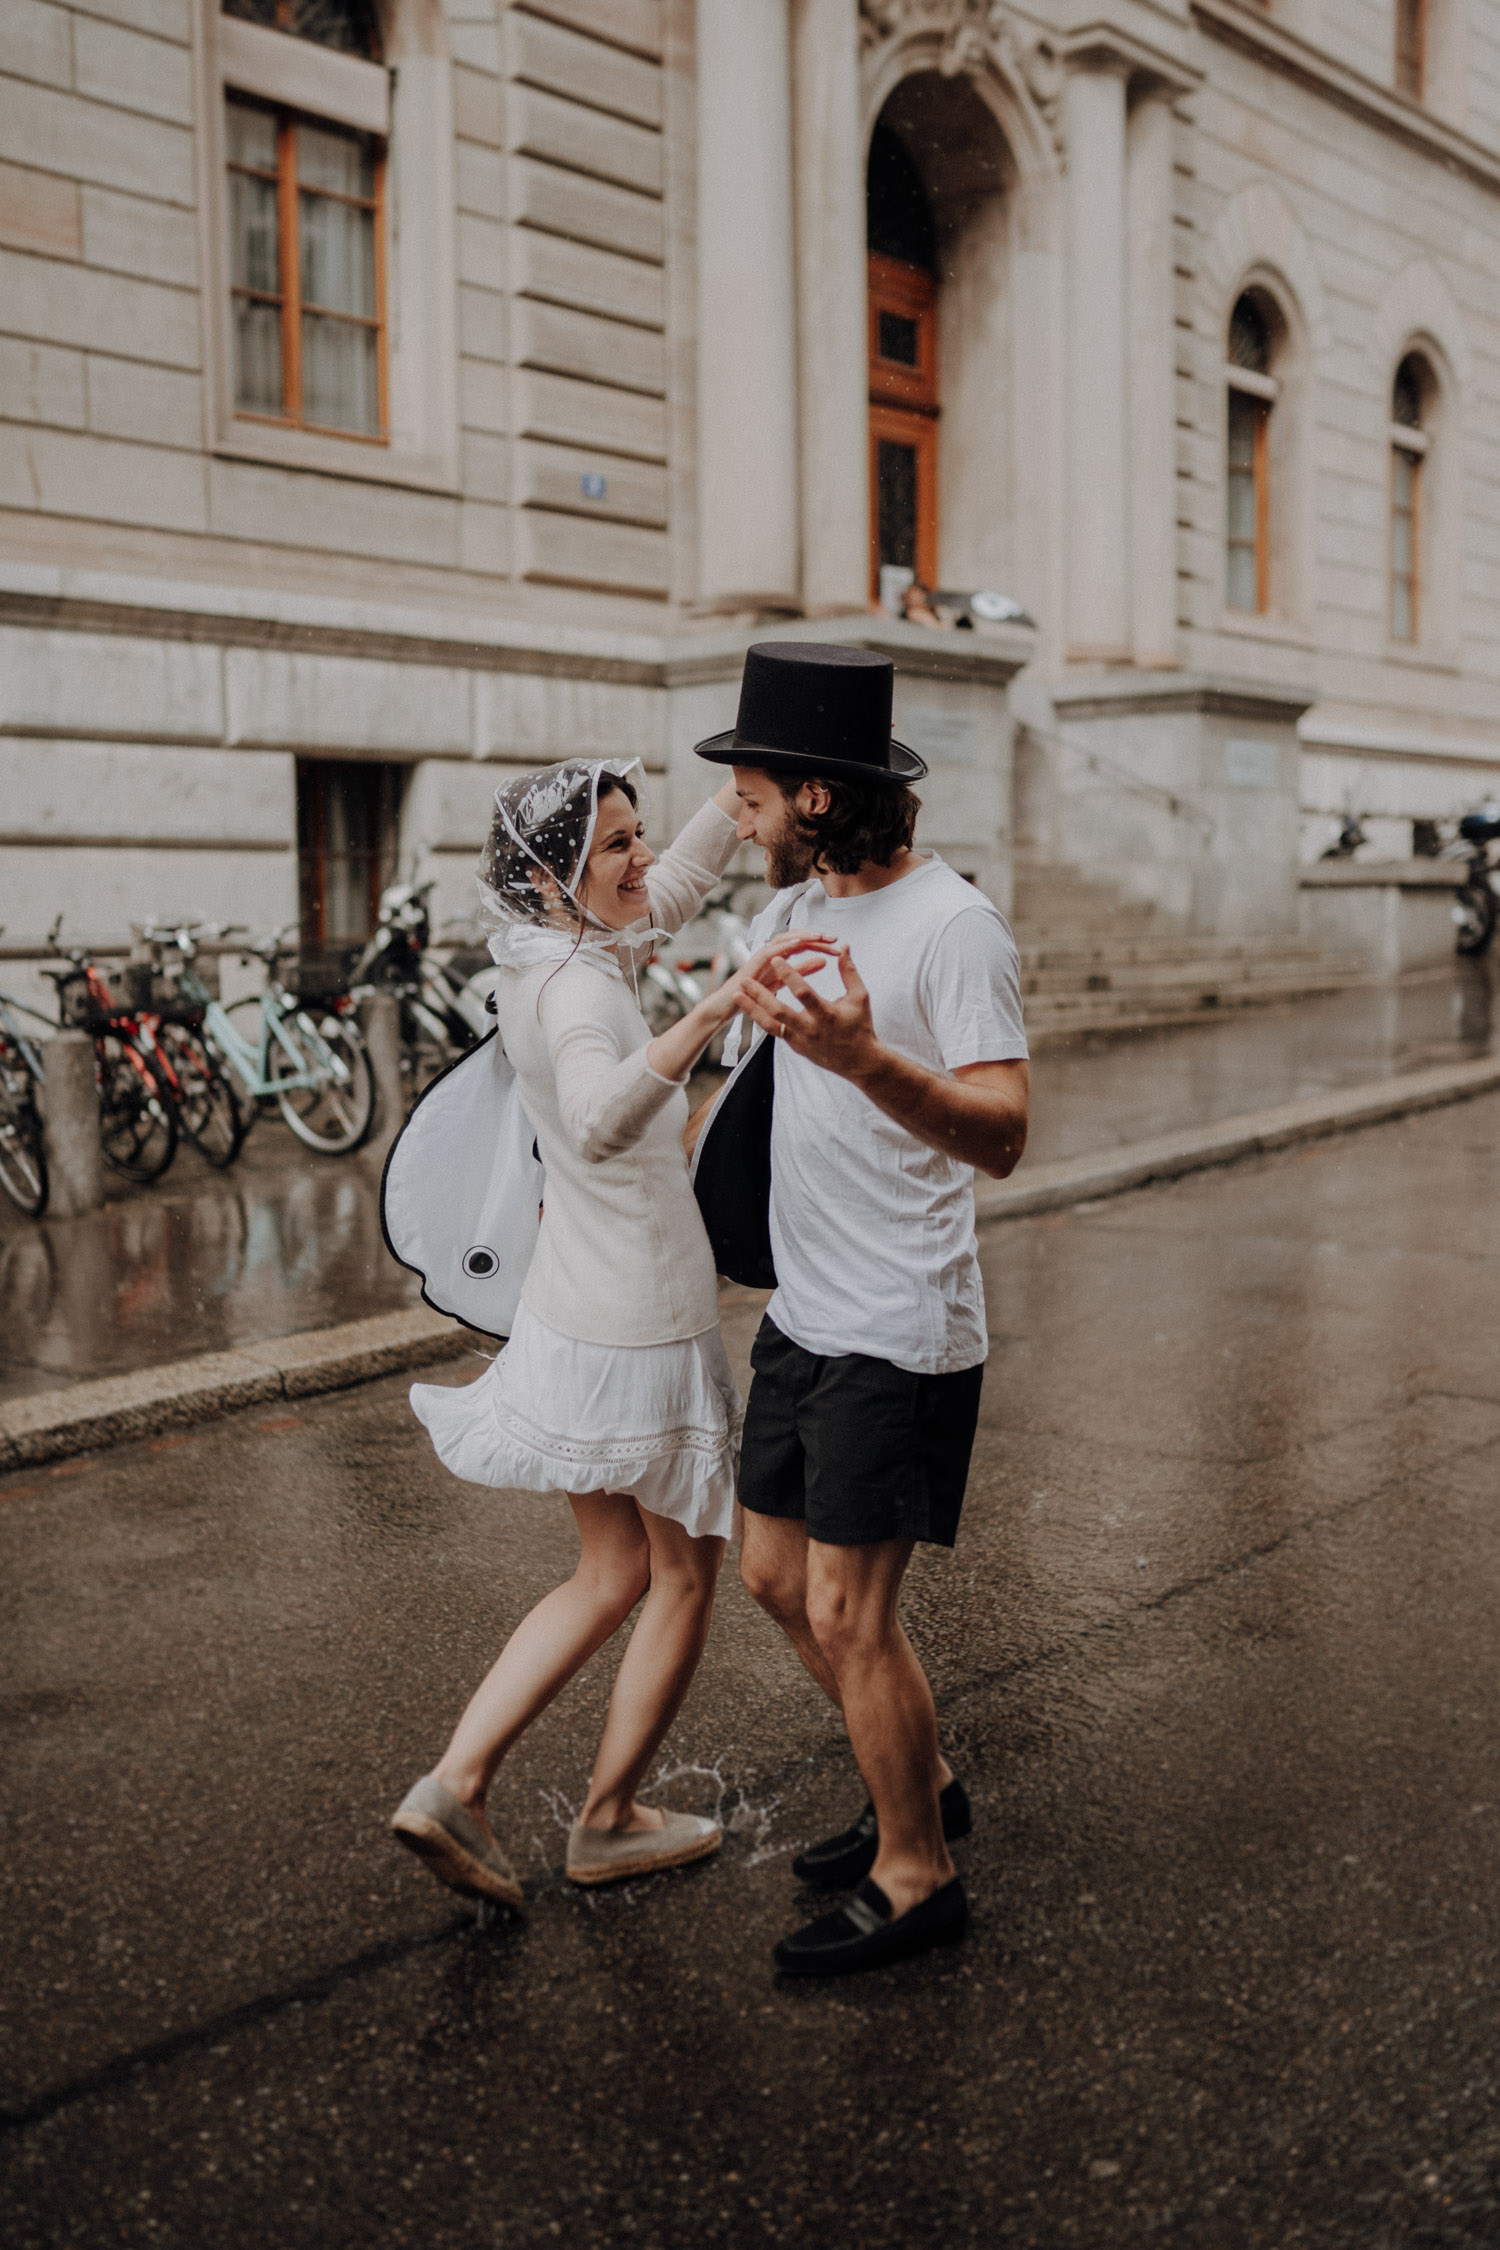 Wedding photographer switzerland basel natural unposed civil wedding old town Basel Minster couple shoot bohemian style documentary rainy wedding dancing in the rain